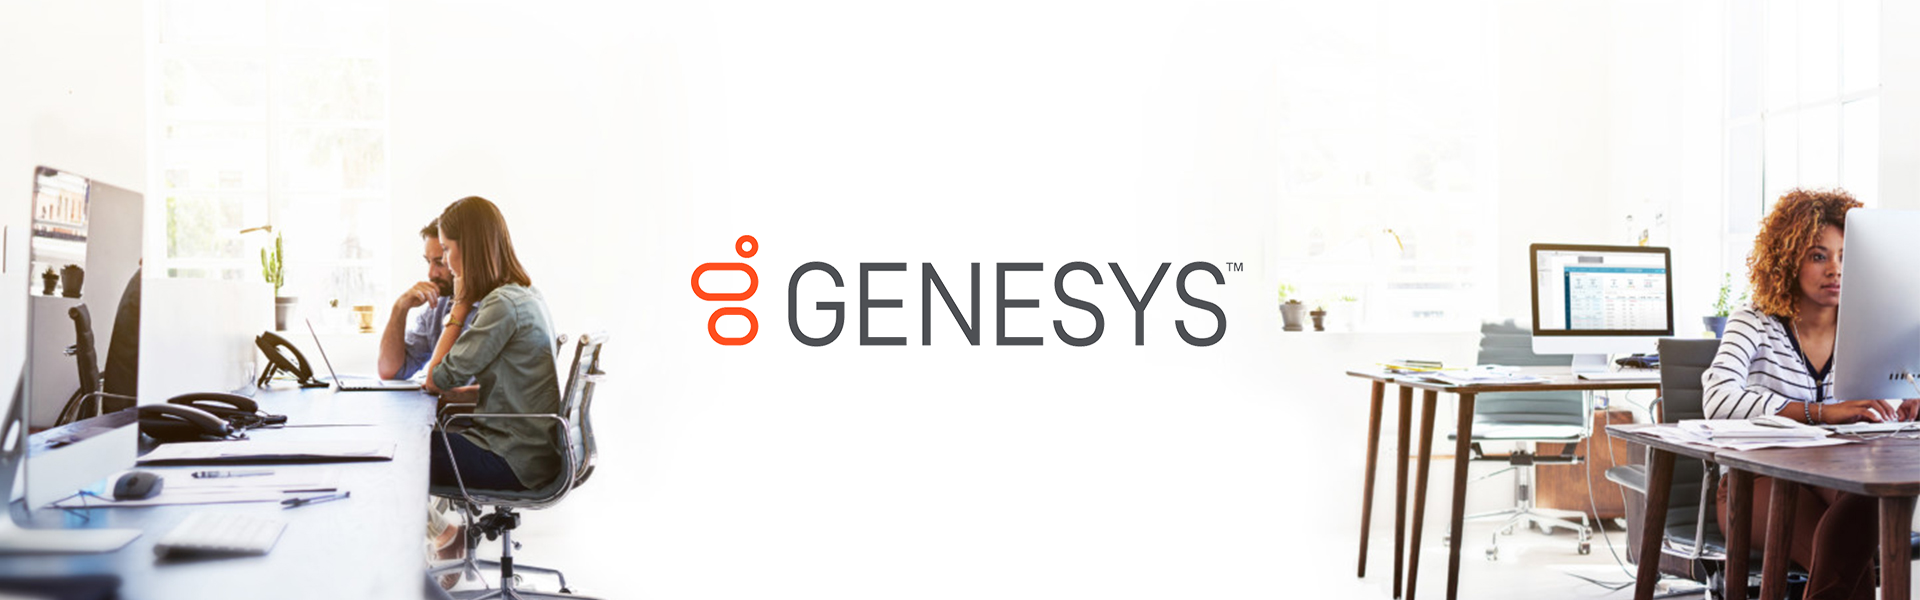 Genesys Cloud: Reviews - All-in-One Cloud Contact Center